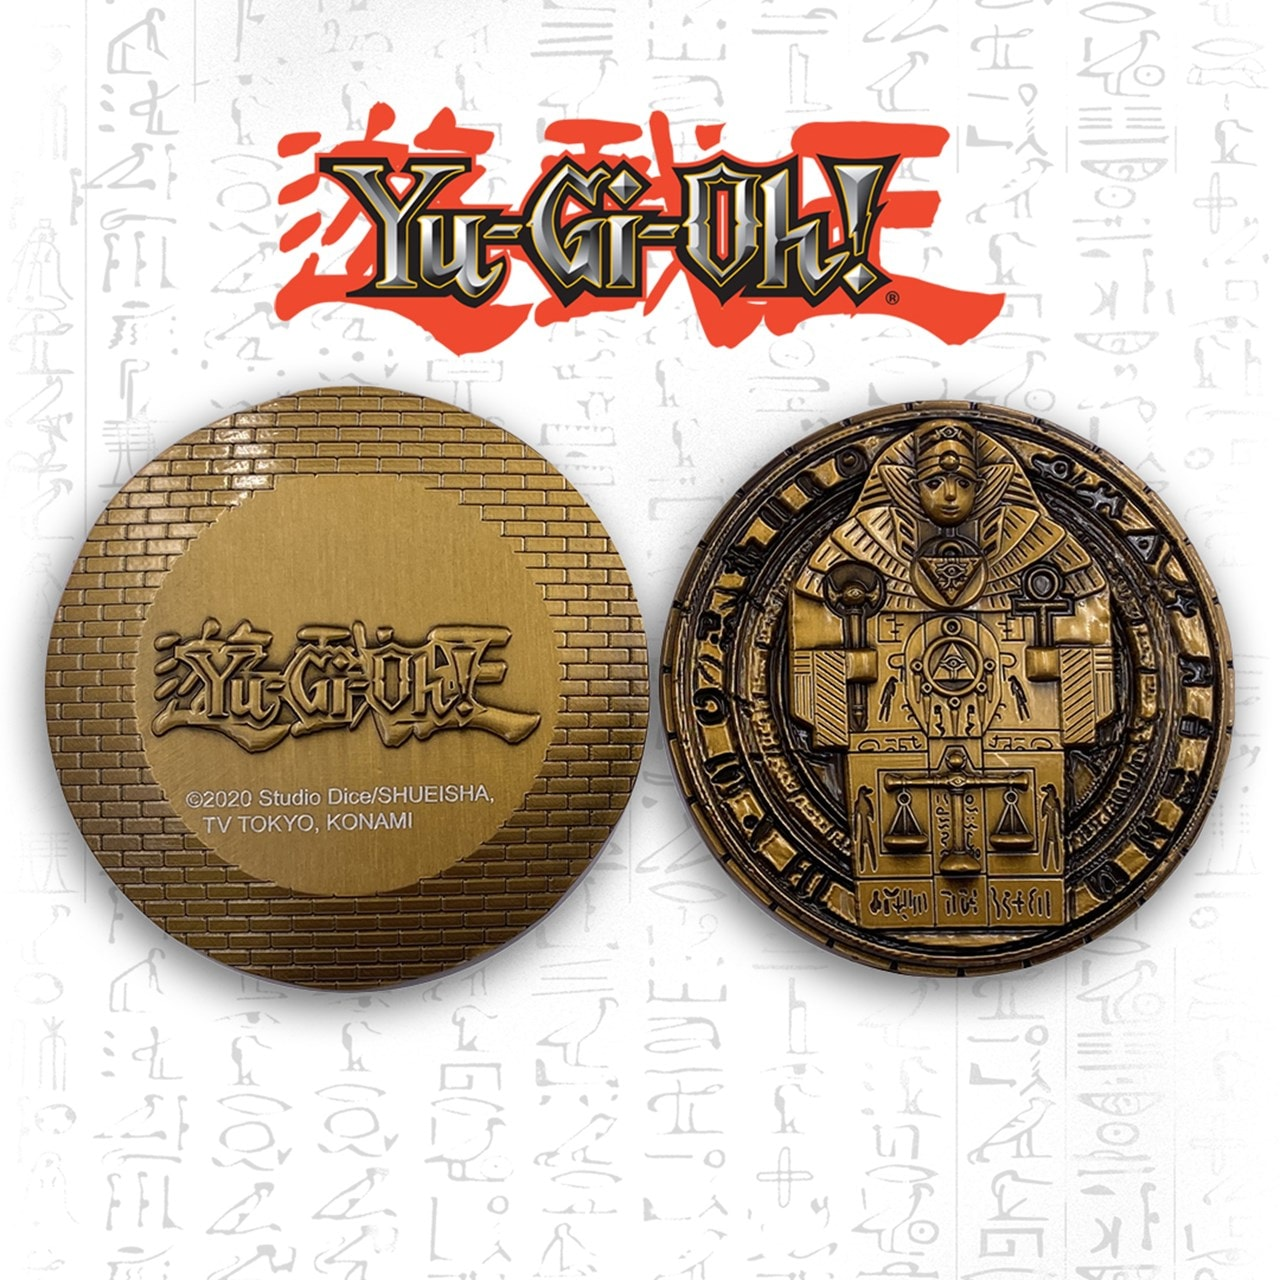 Yu-Gi-Oh! Millenium Stone Metal Collectible (online only) - 1